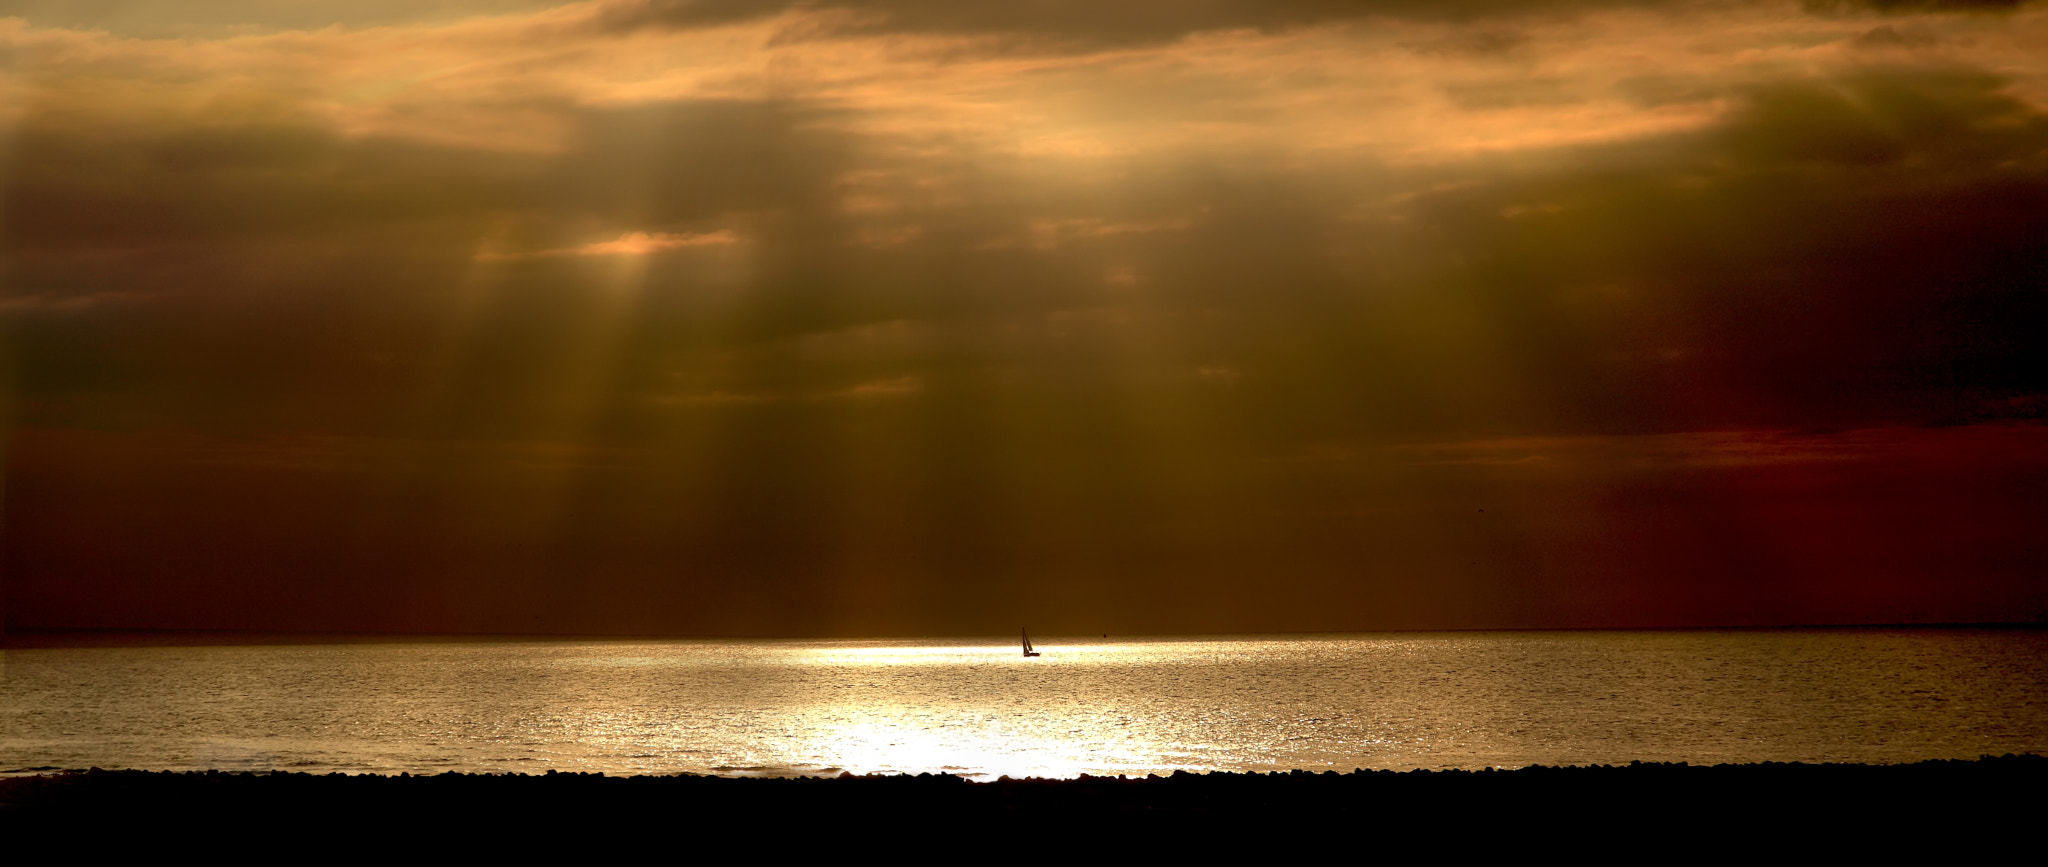 Photograph Last light of the day by Rob Van Thienen on 500px